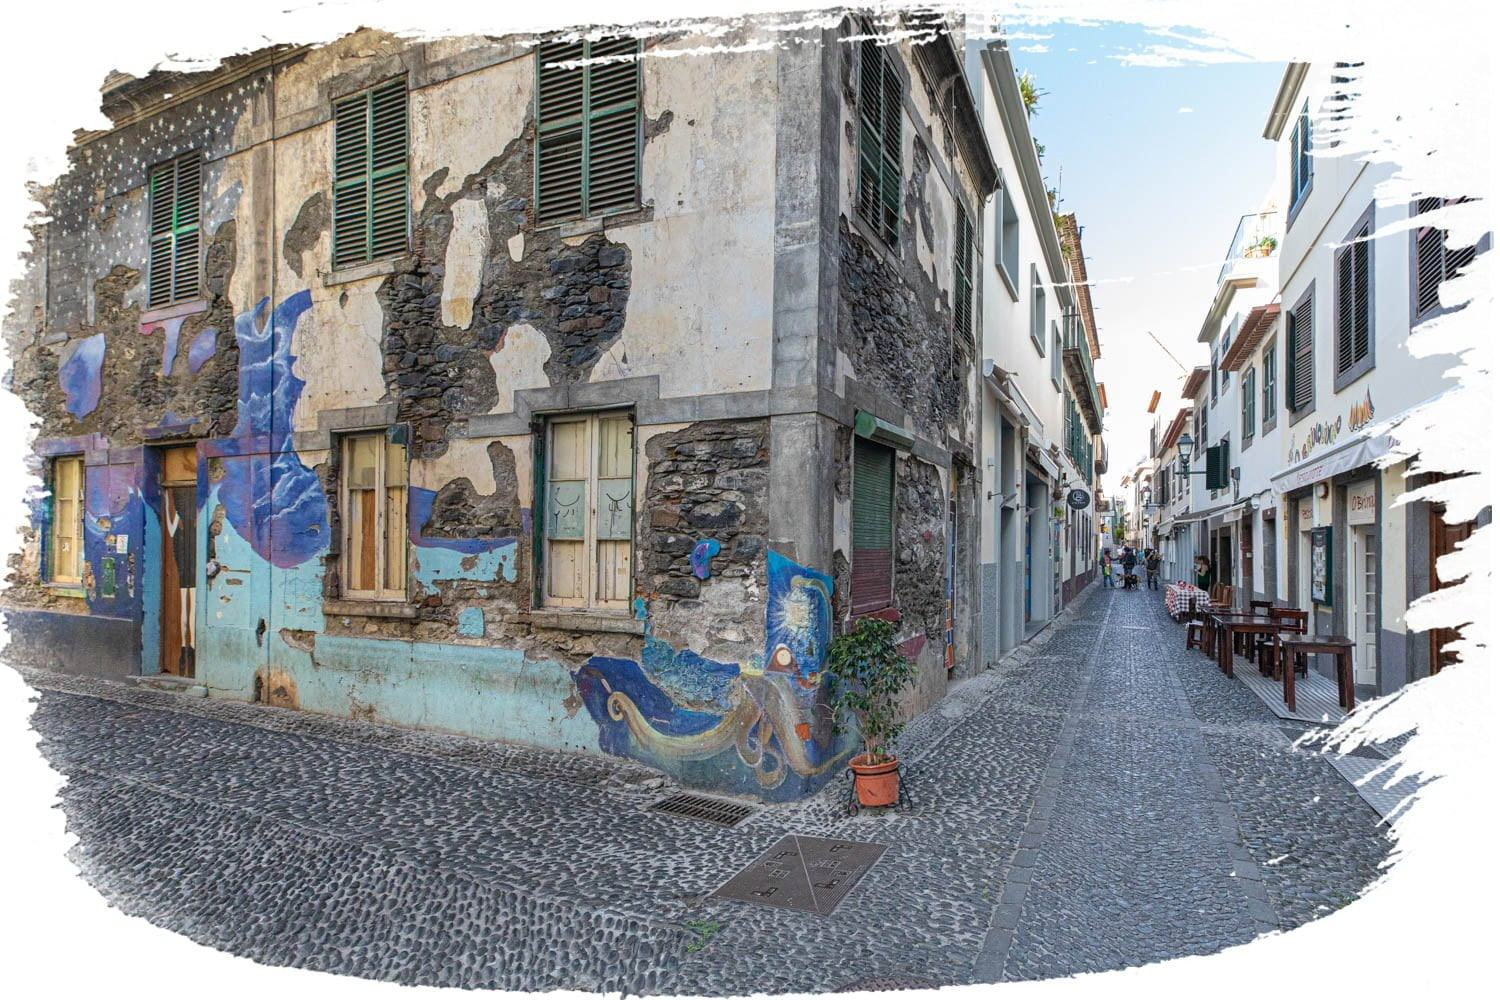 The streets of Old Town Funchal